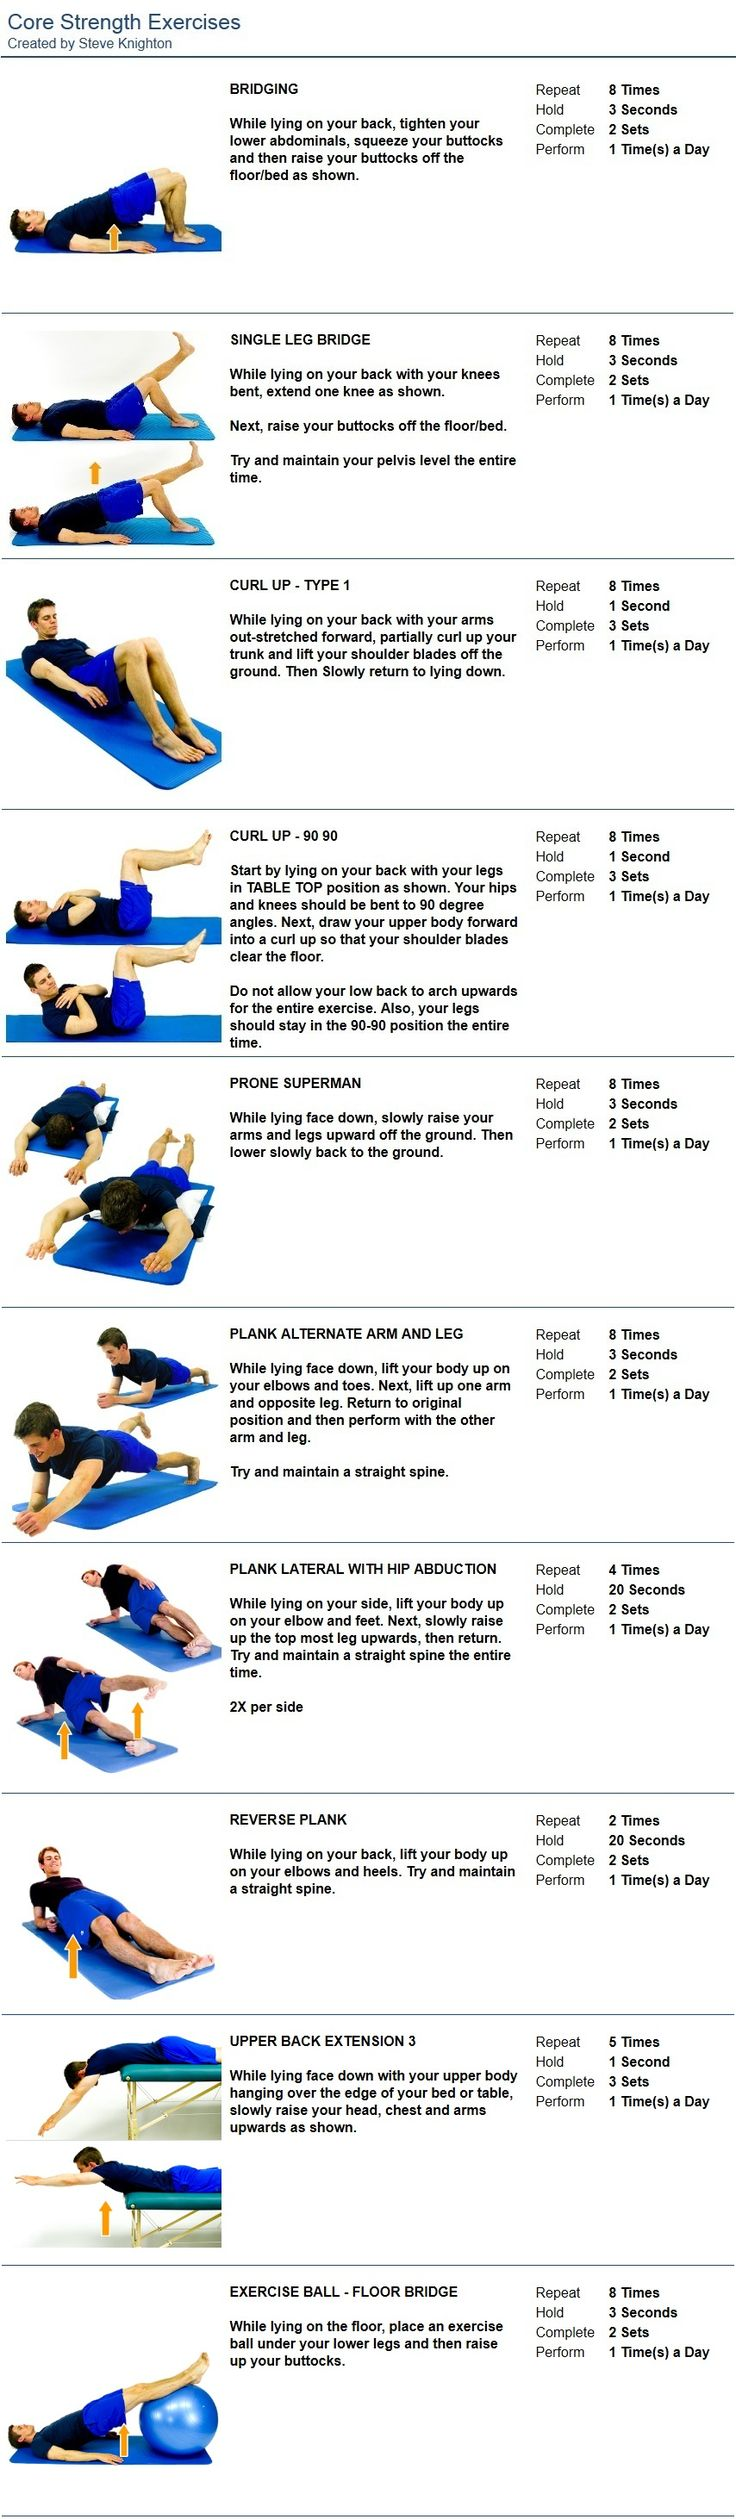 17 Best Images About Core Strength Exercises On Pinterest